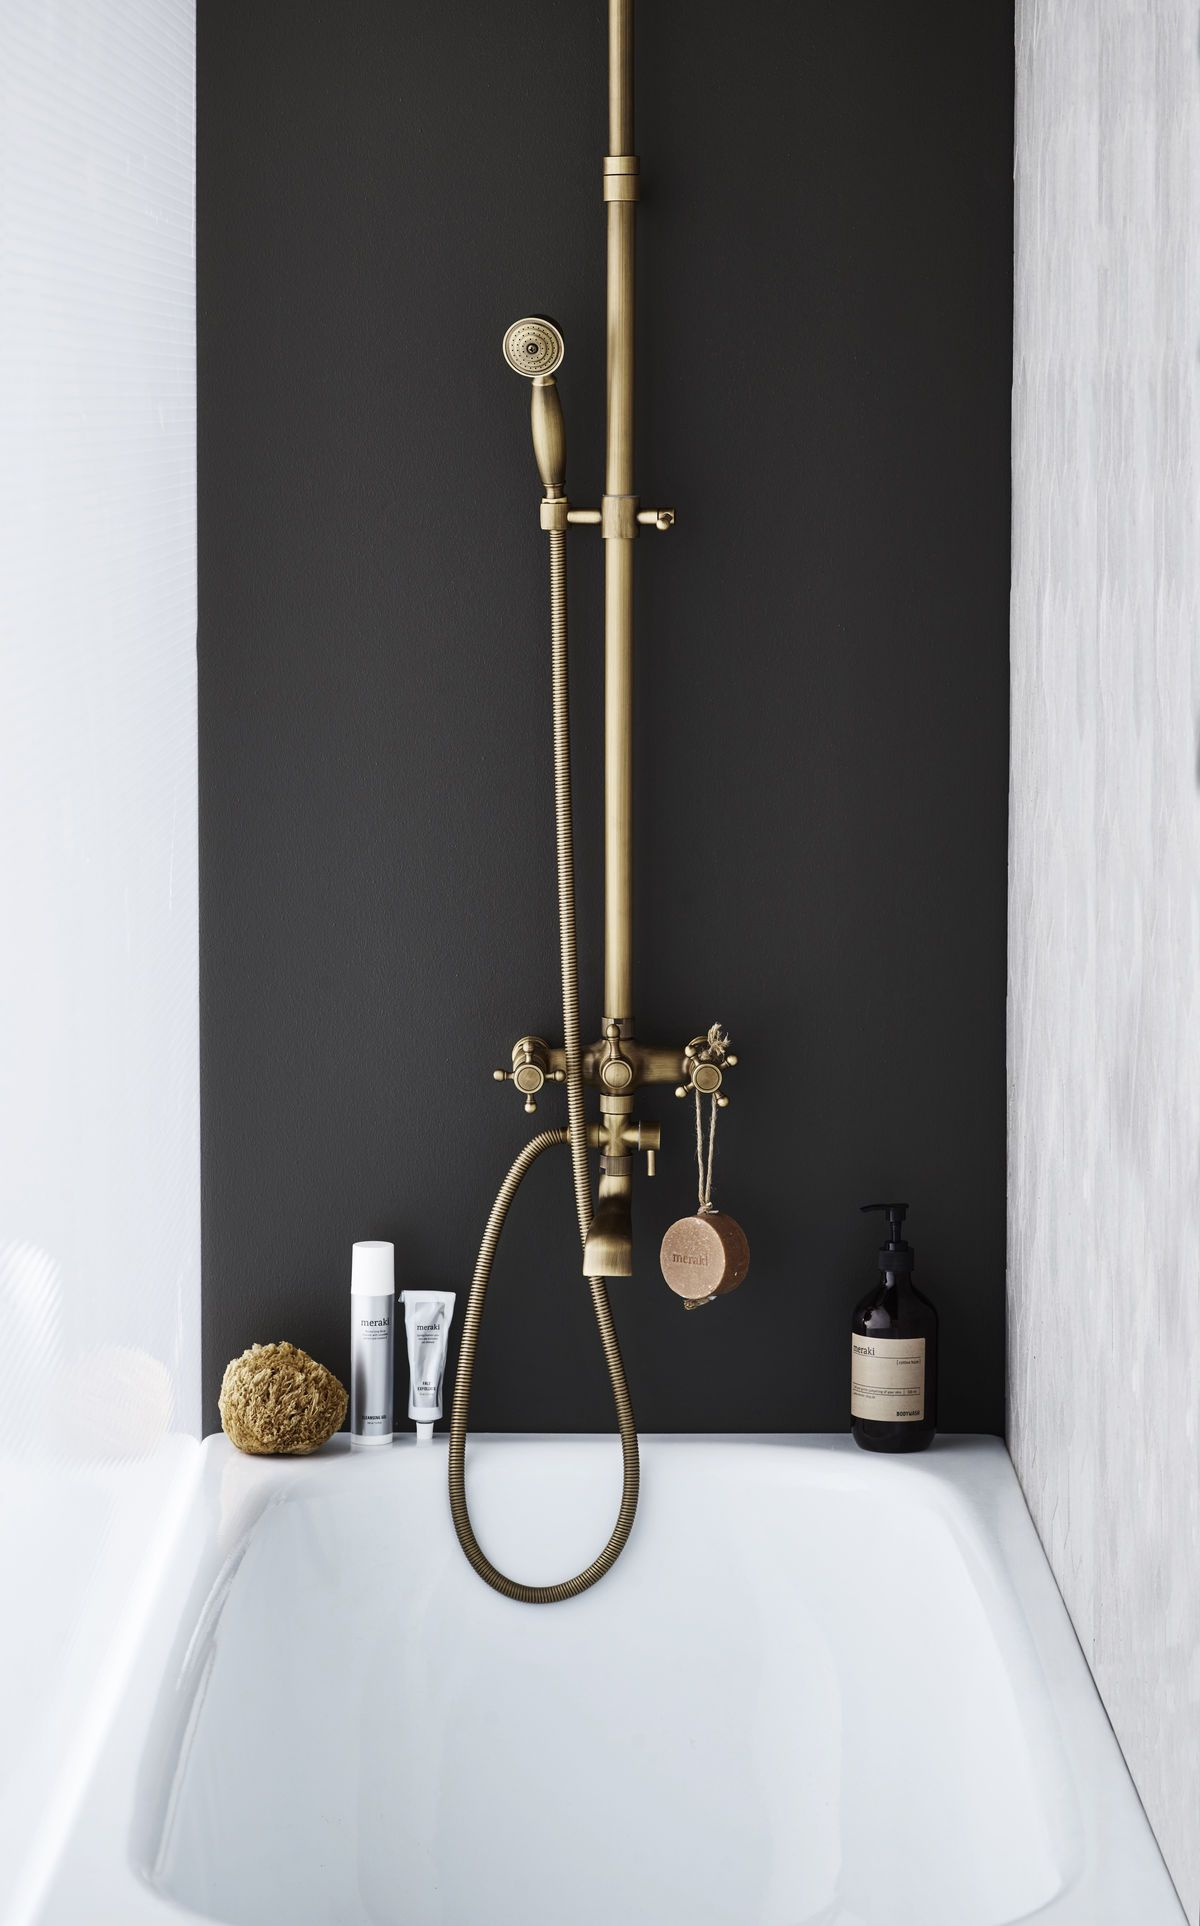 Dark accent wall in shower. Bathroom interior design inspiration